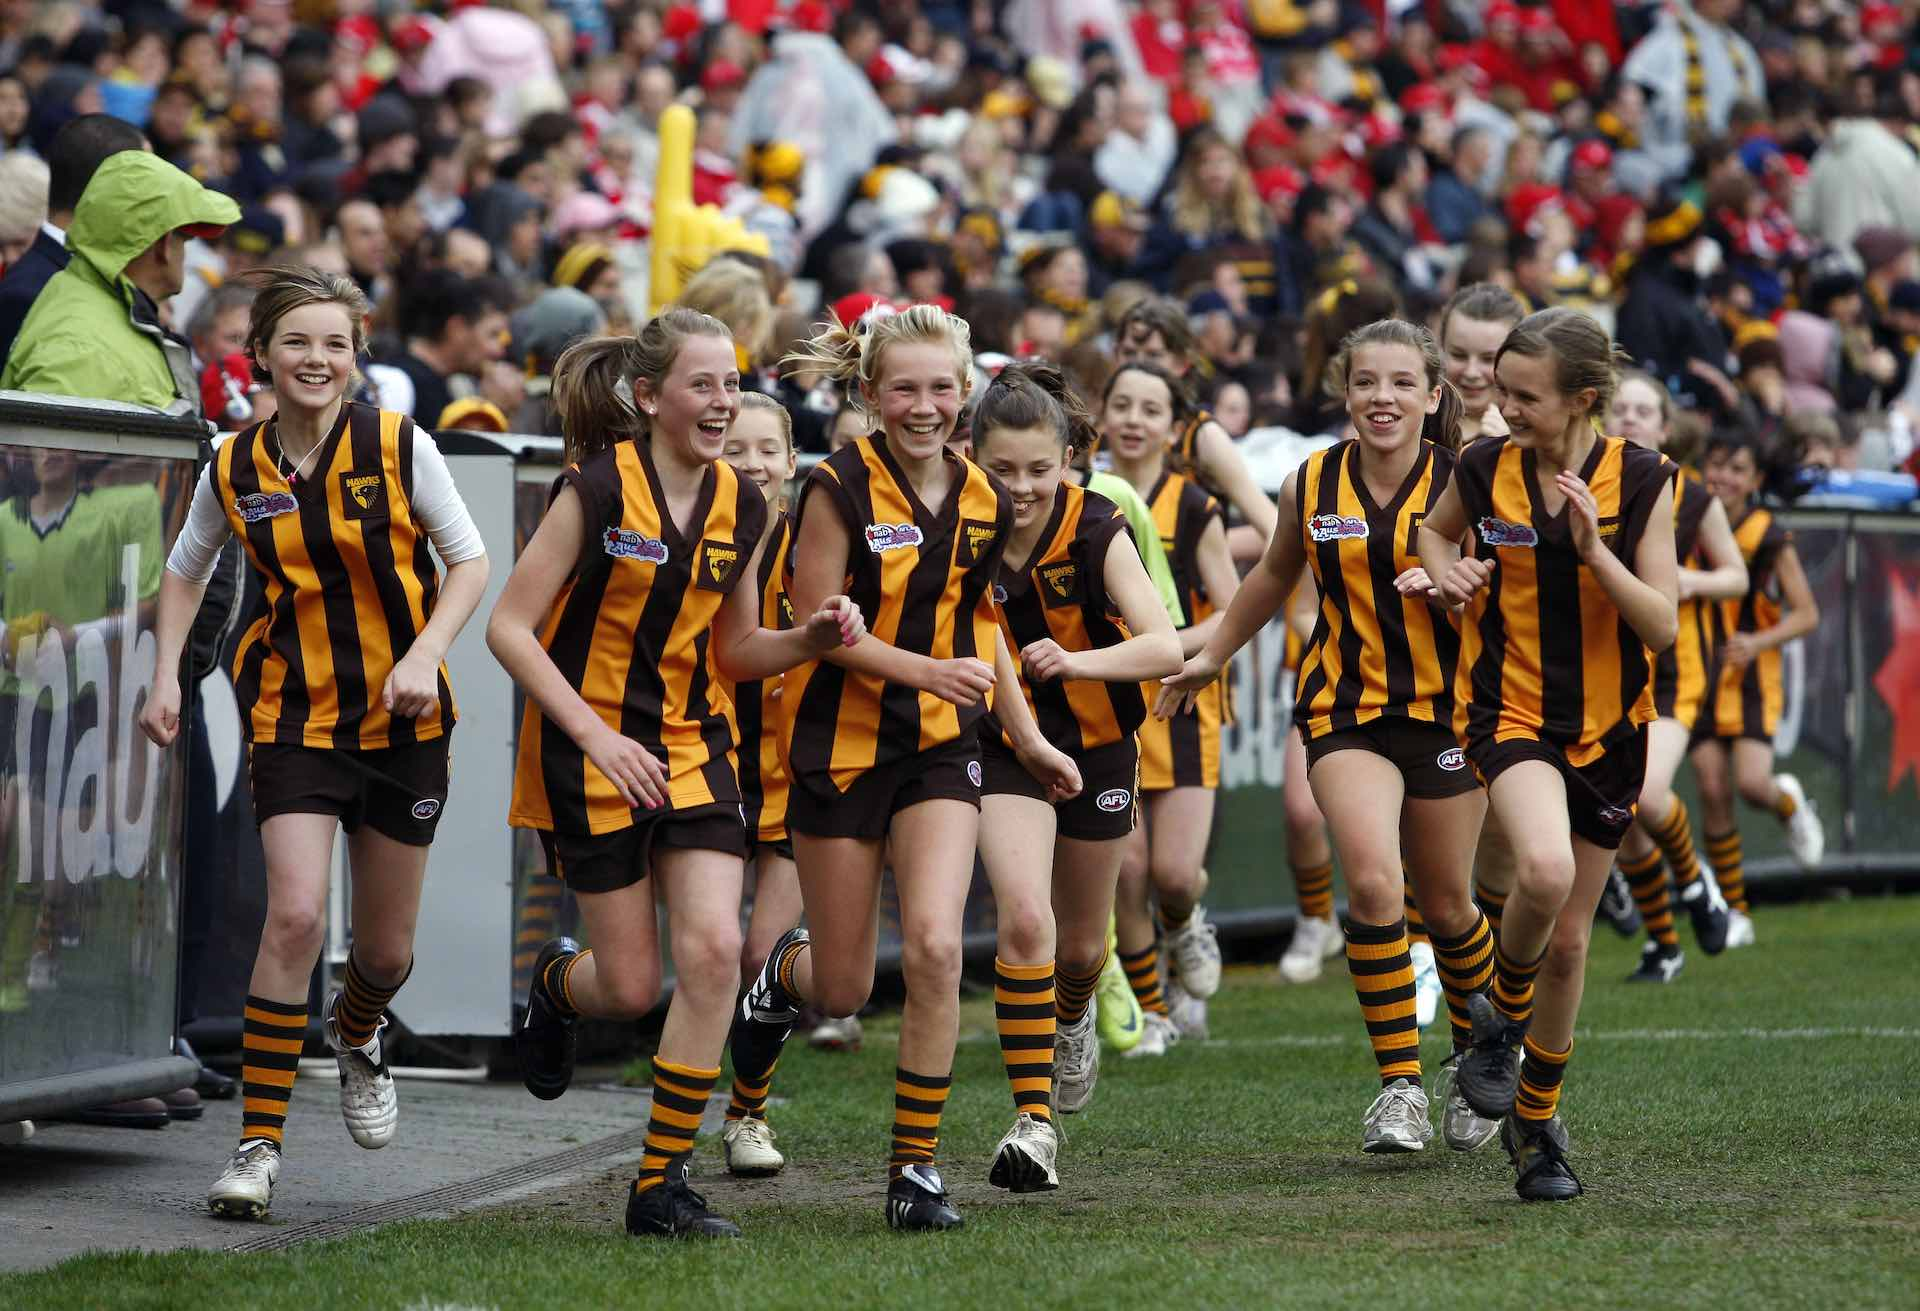 Girls with a smile on face are running at the boundary of footy stadium post-match